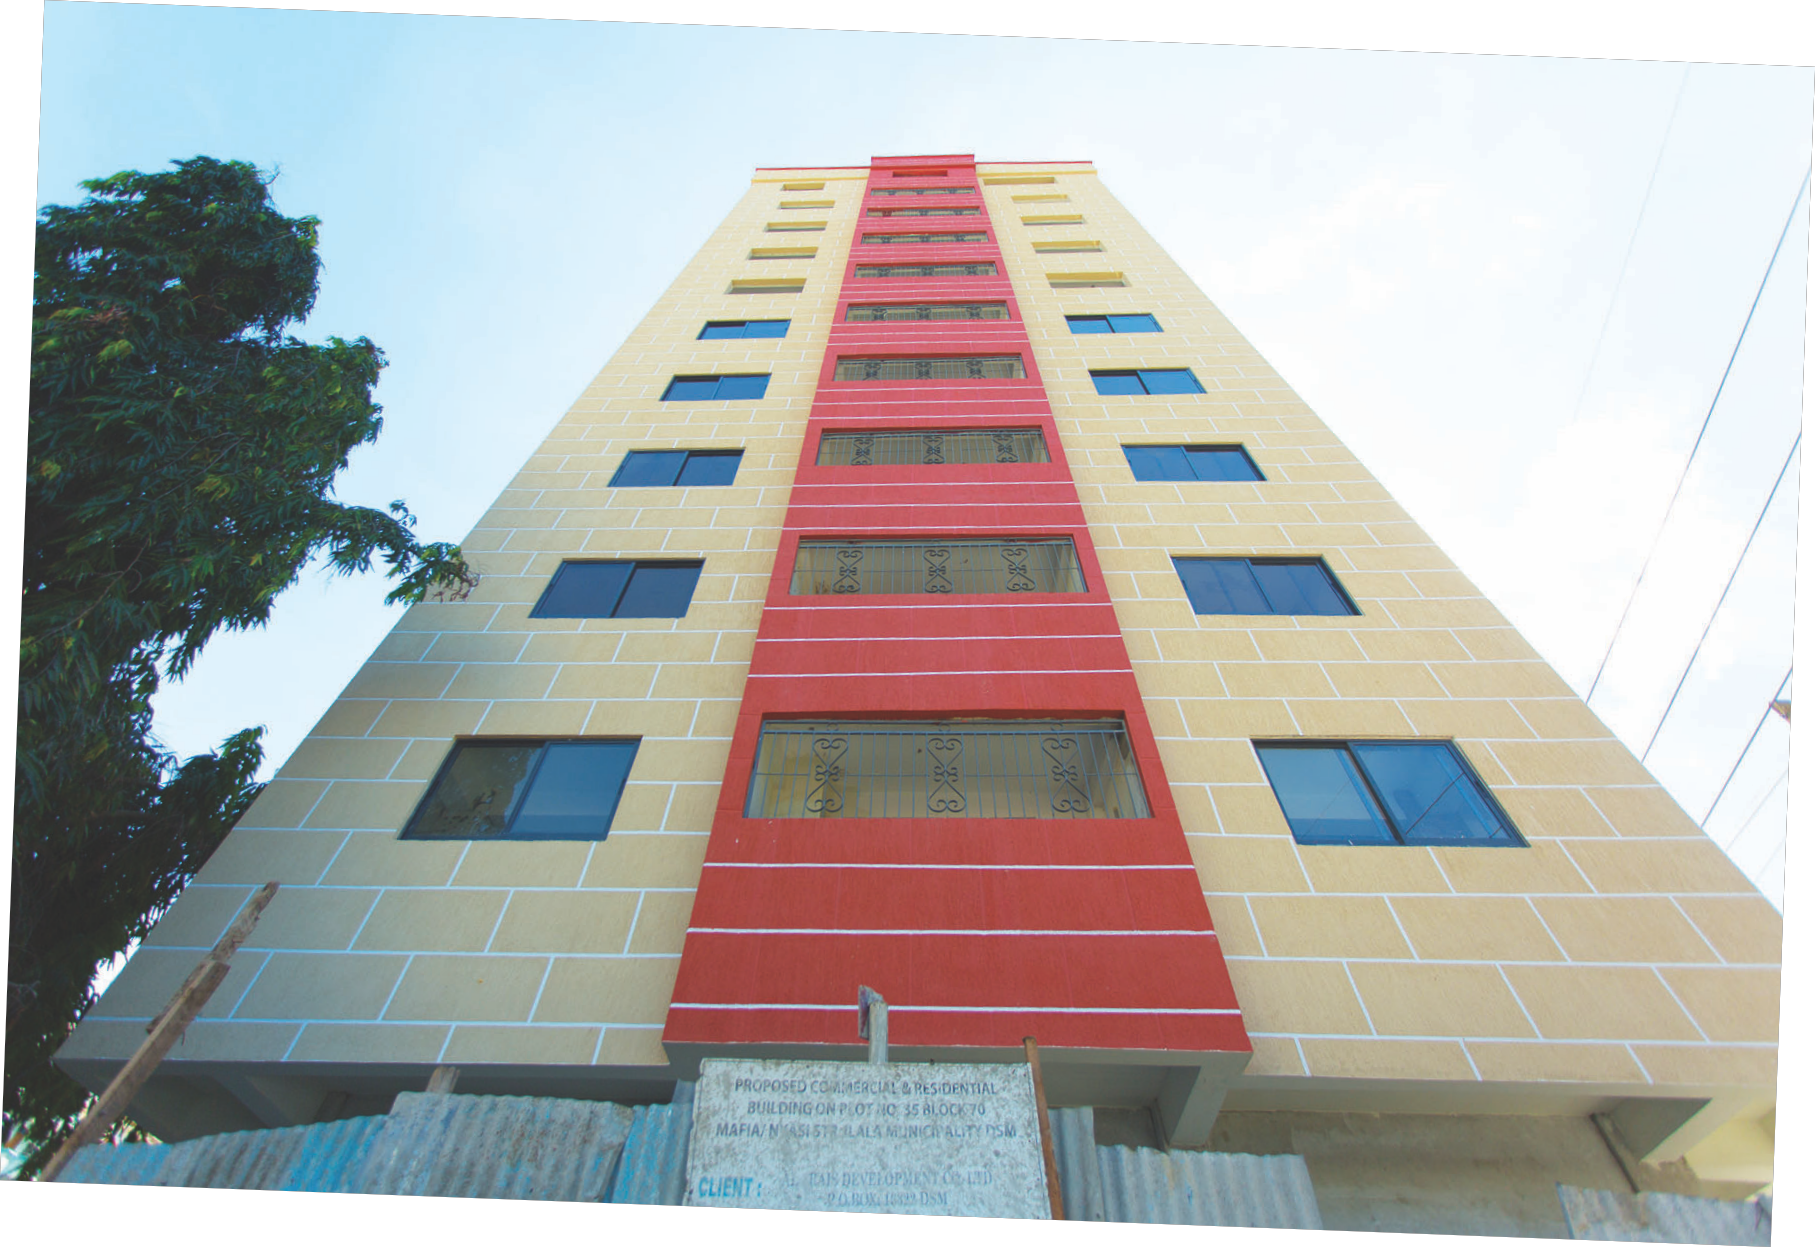 THE MAFIA HEIGHT APARTMENTS FOR SALE